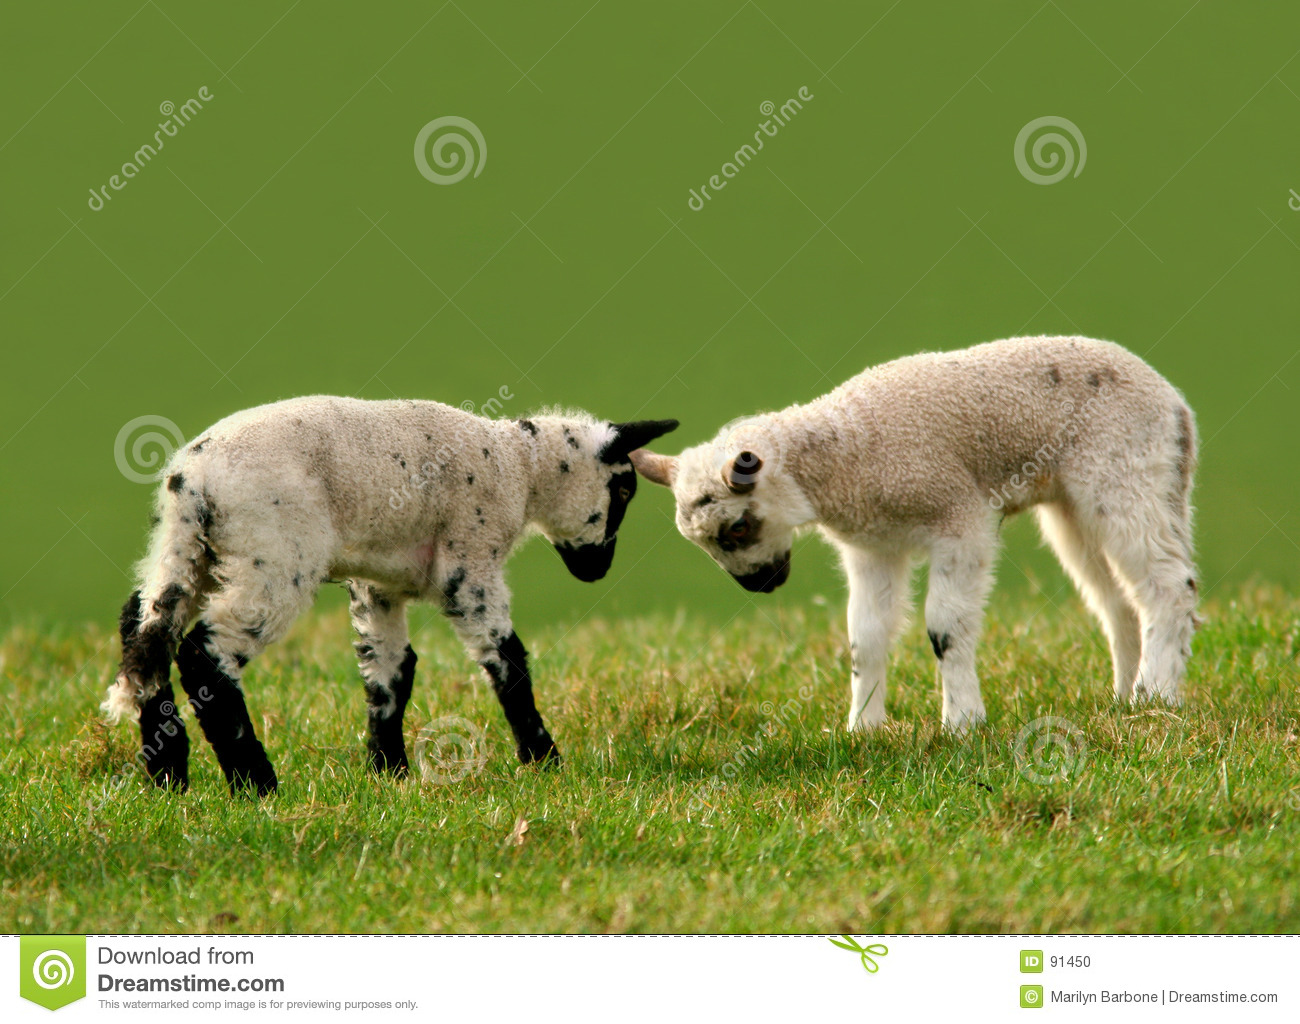 Two Lambs Head Butting Each Other In A Meadow